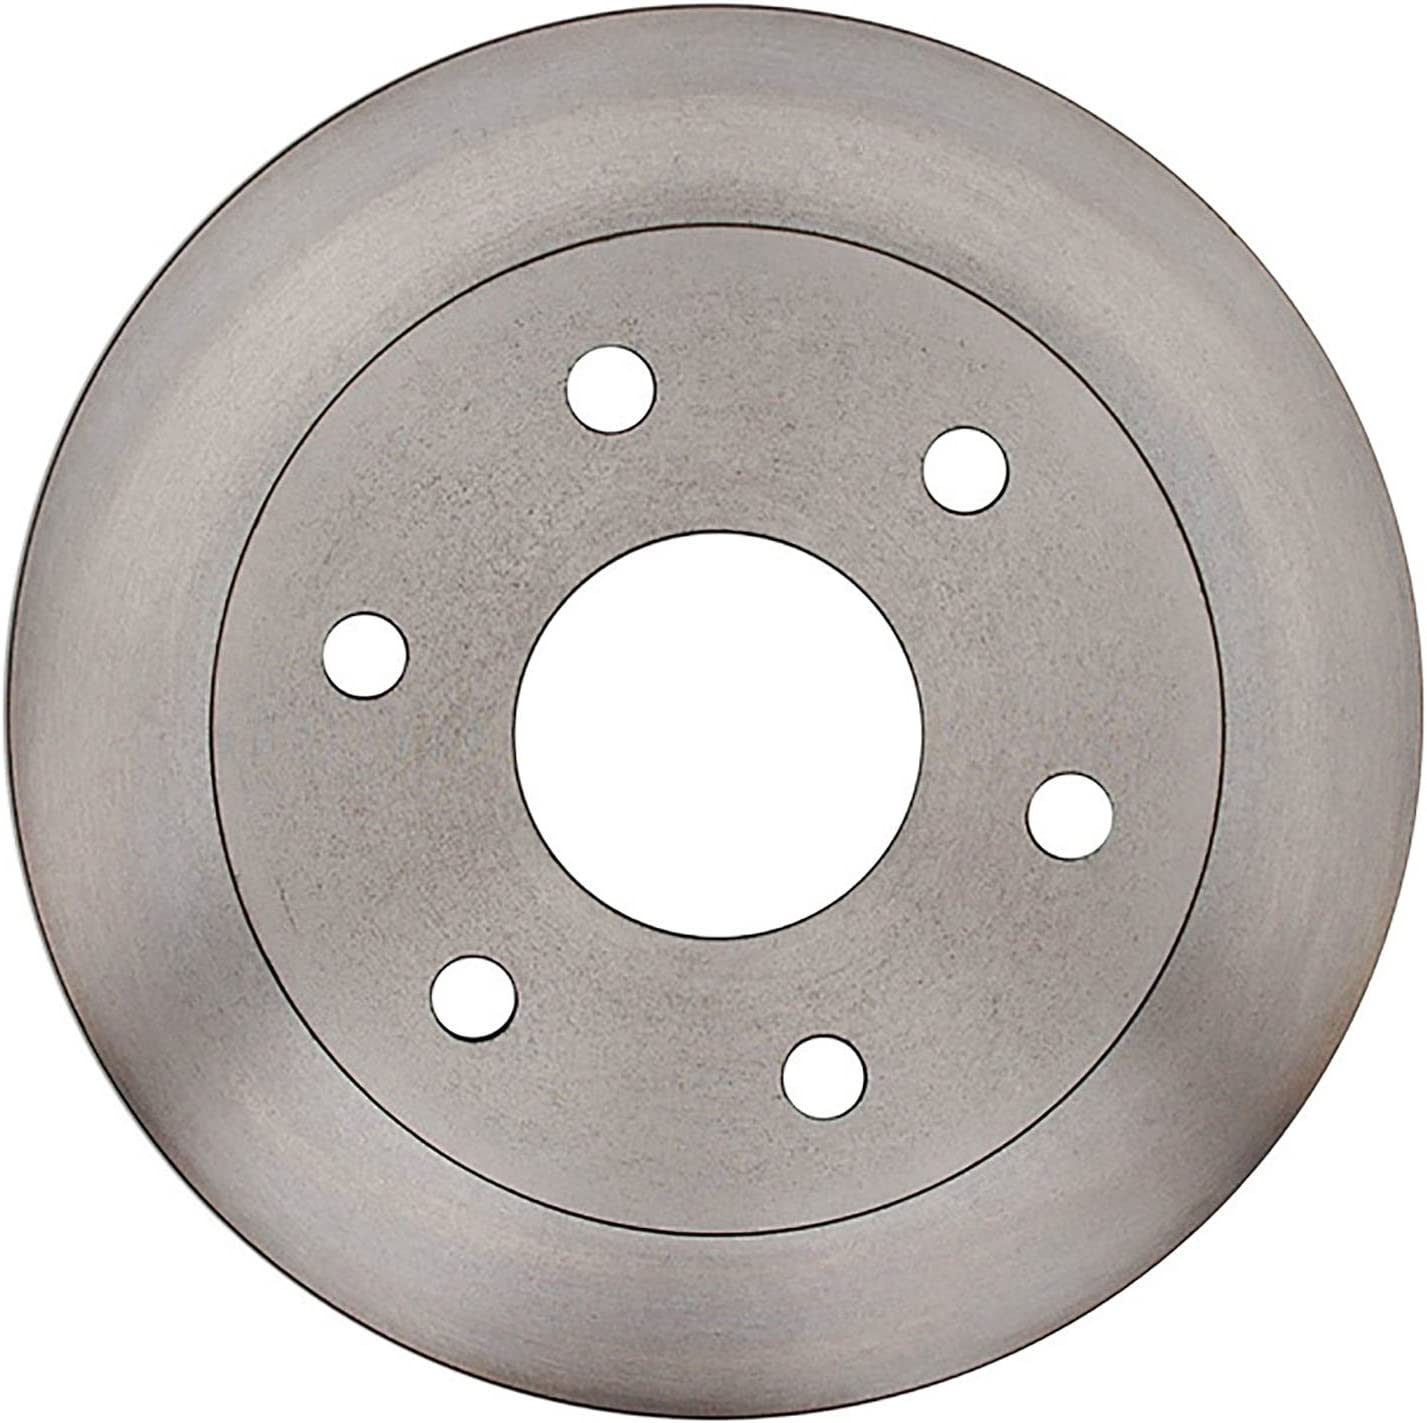 ACDelco Max Max 62% OFF 48% OFF Silver 18A271A Front Rotor Disc Brake